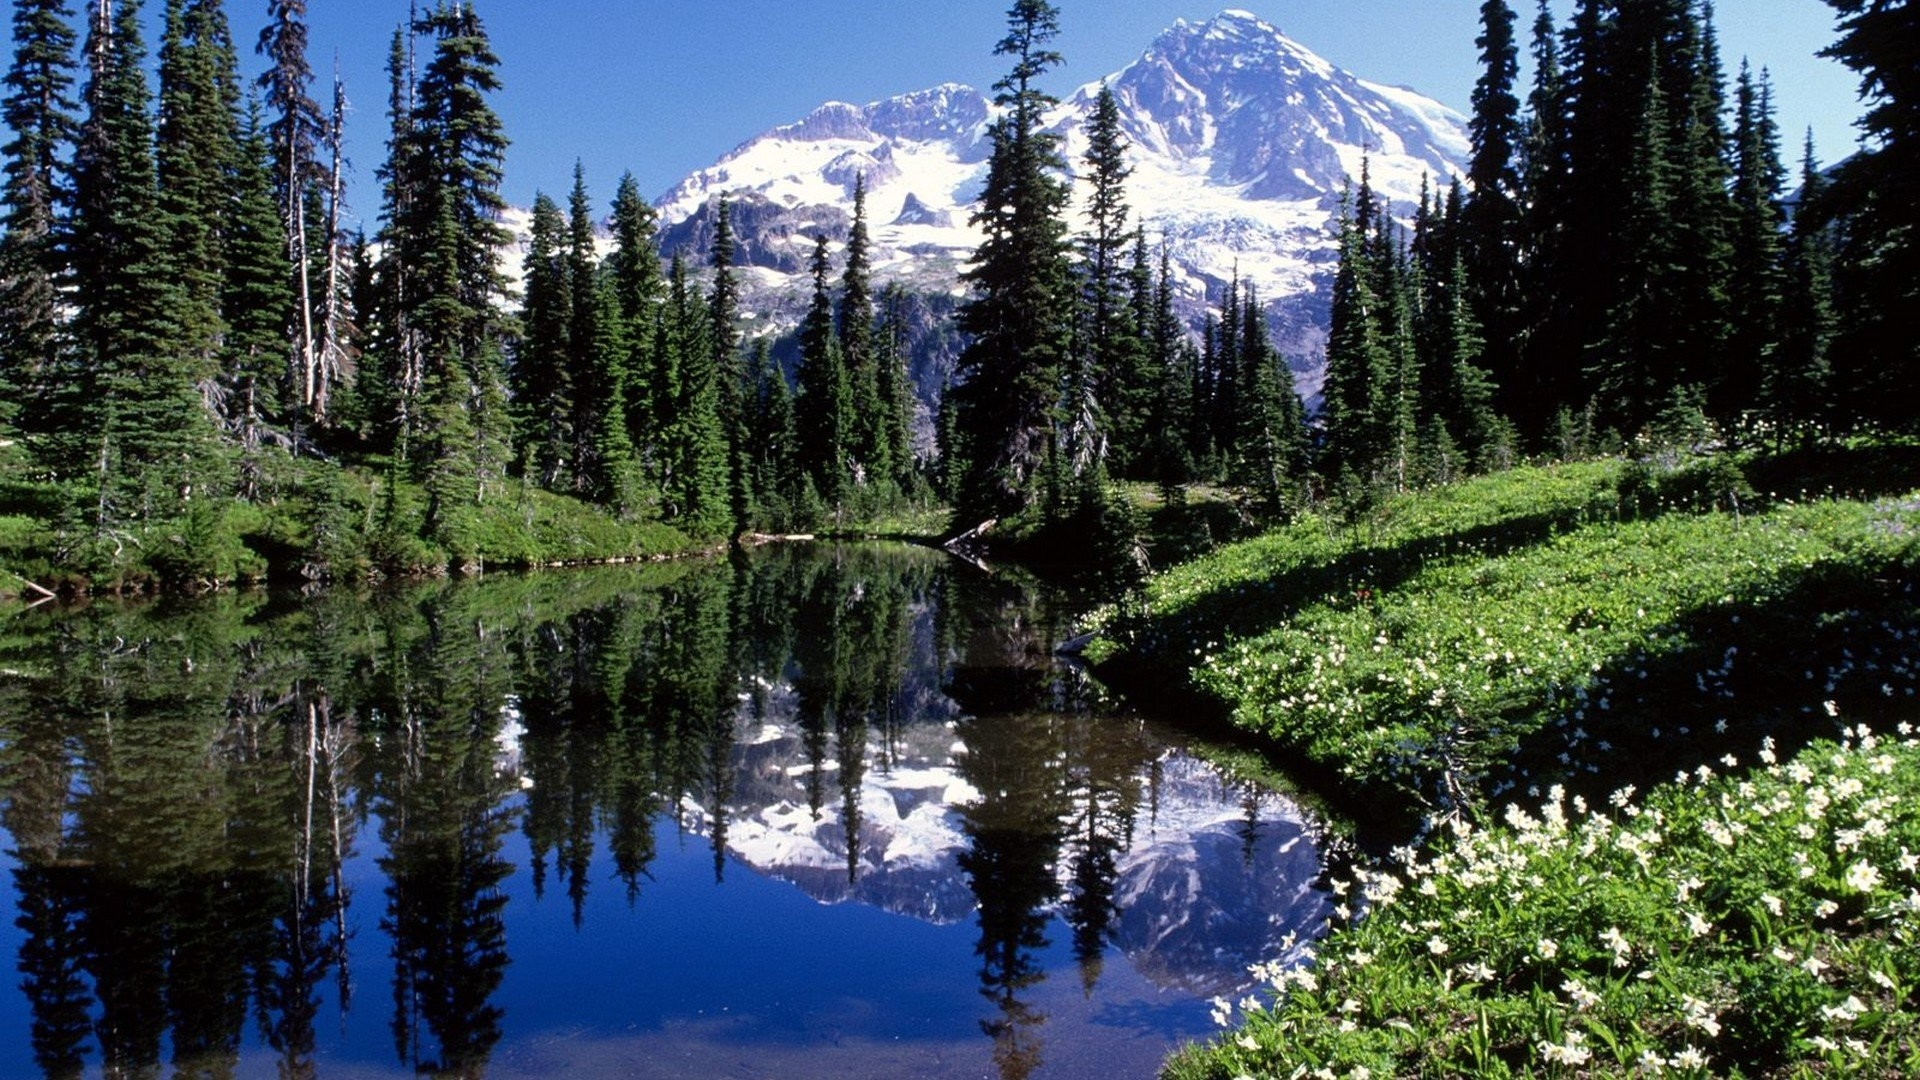 1920x1080 Mountains night mirrors lakes Washington Mount Rainier wallpaper |   | 260103 | WallpaperUP